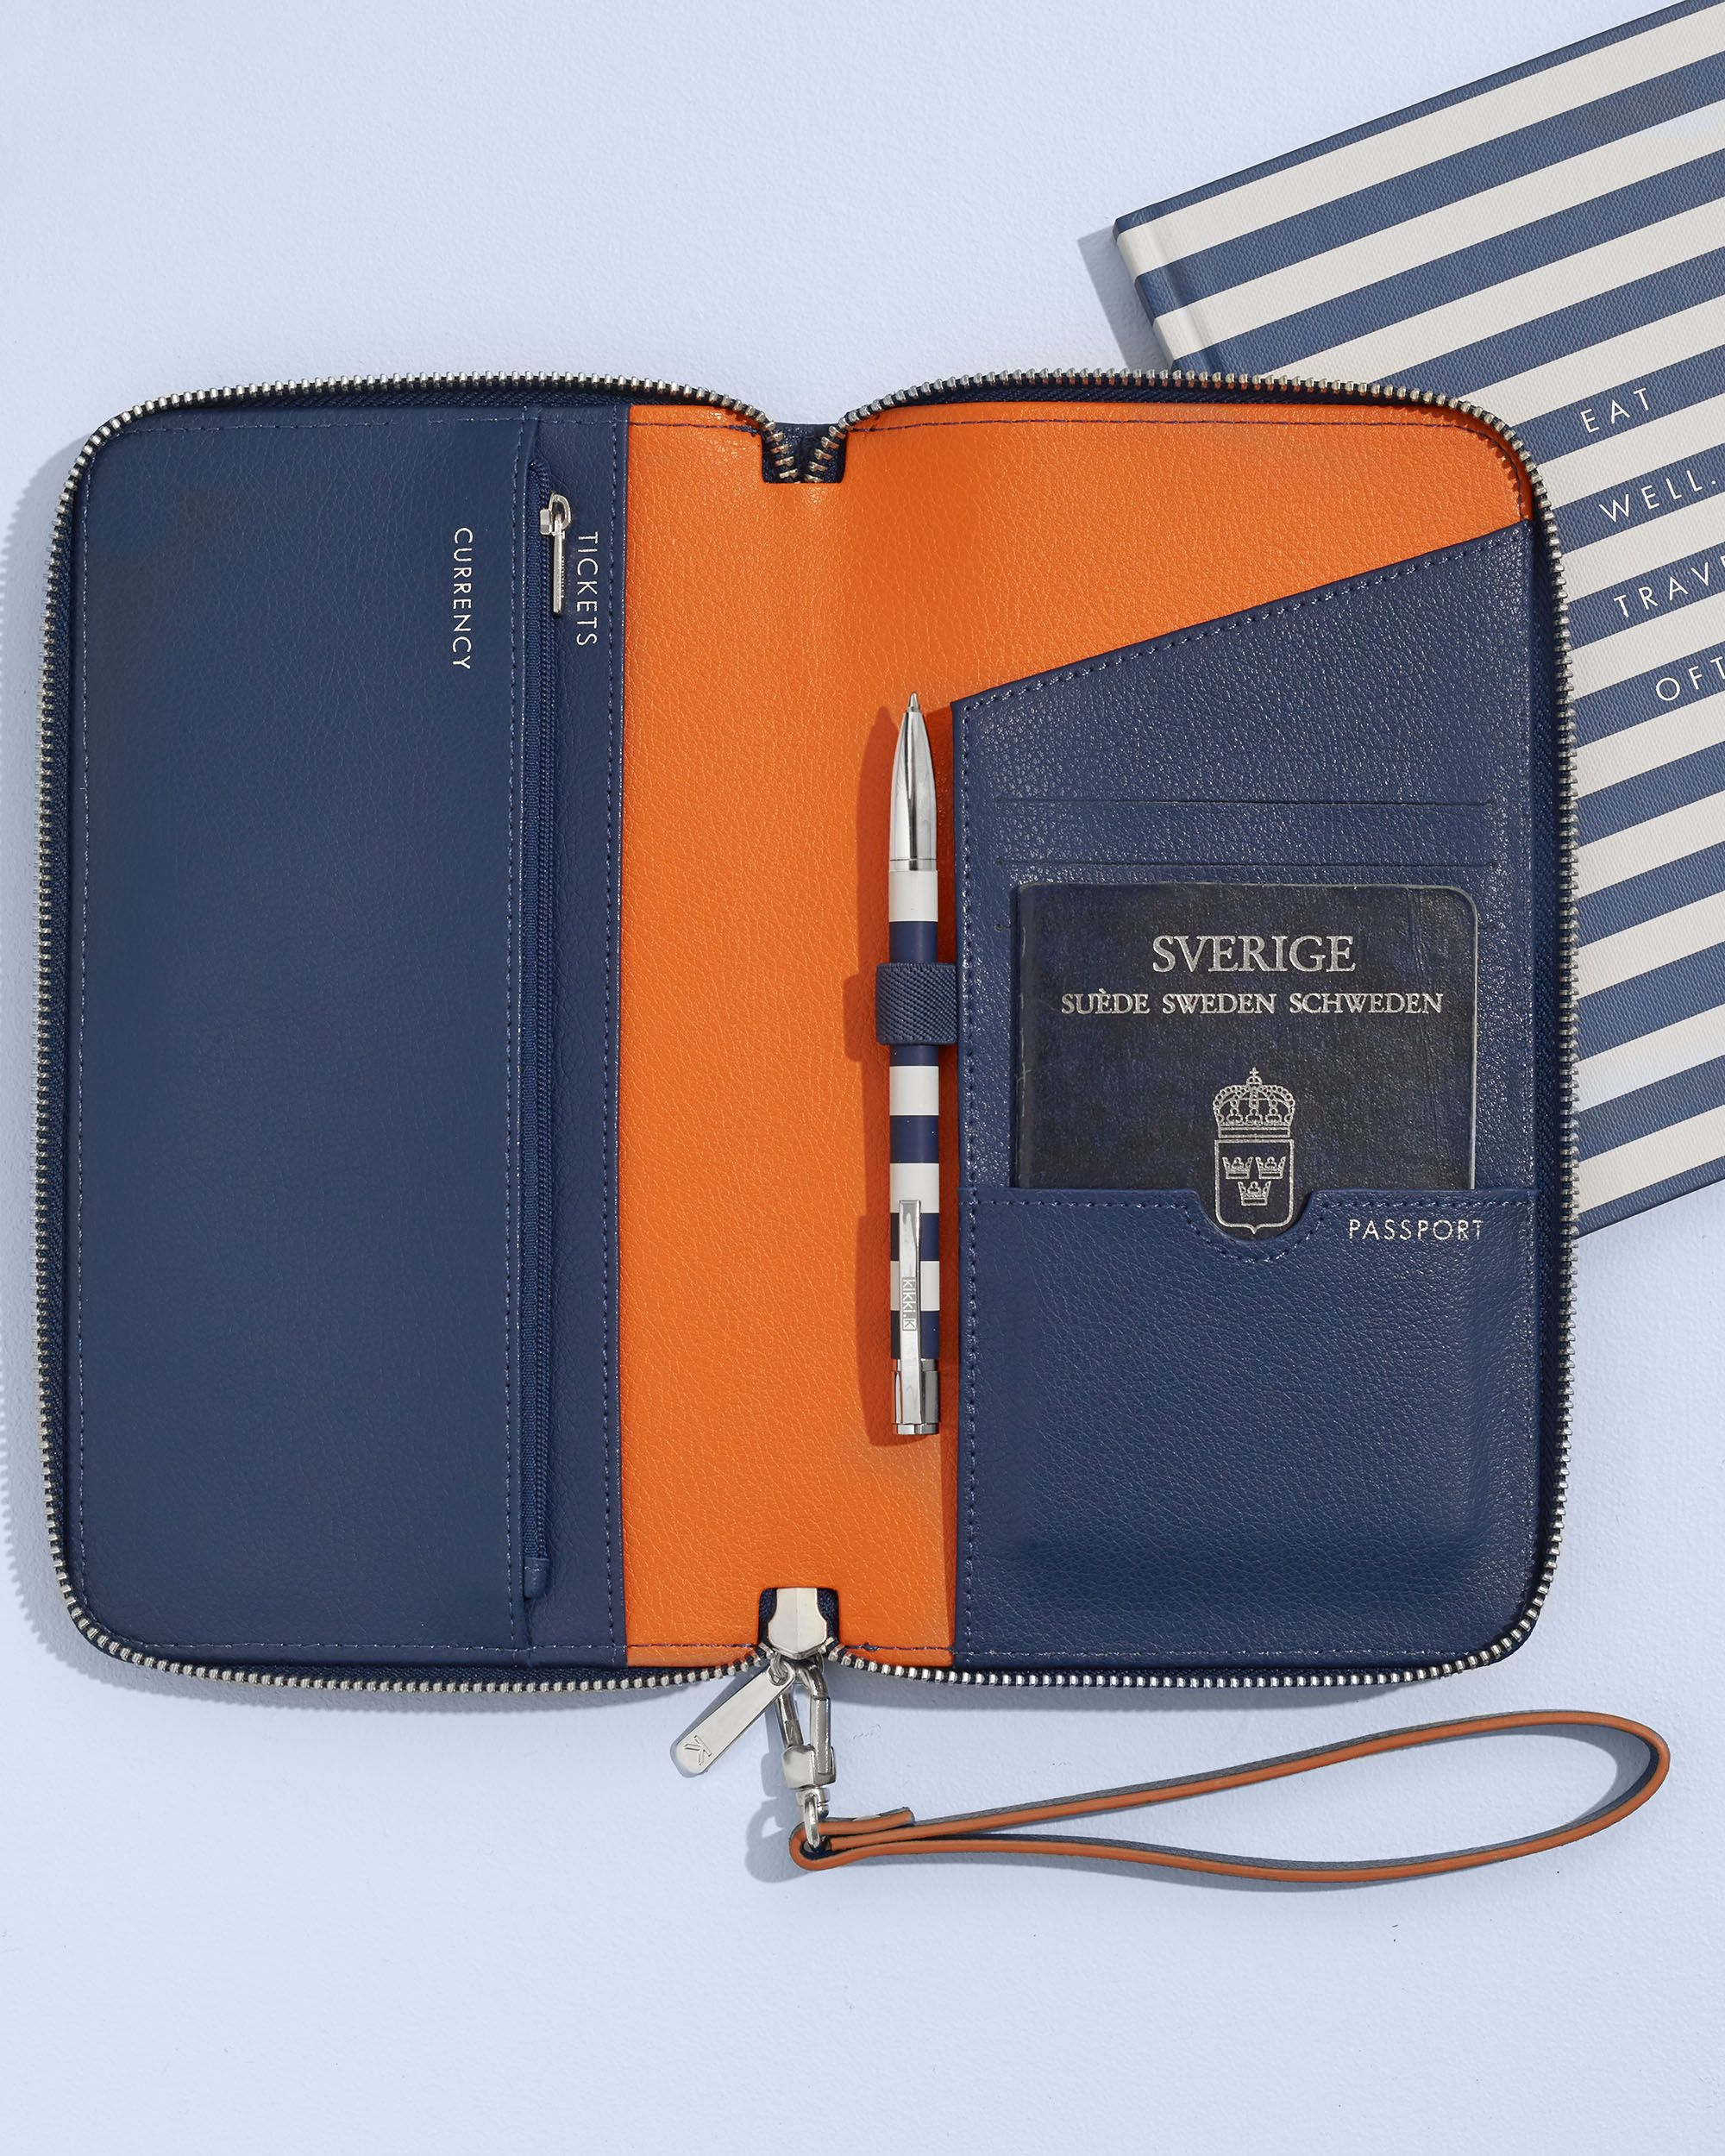 Radley ladies leather gloves - Travel In Style With This Gorgeous Leather Travel Wallet And Travel Journal Radley Handbagsladies